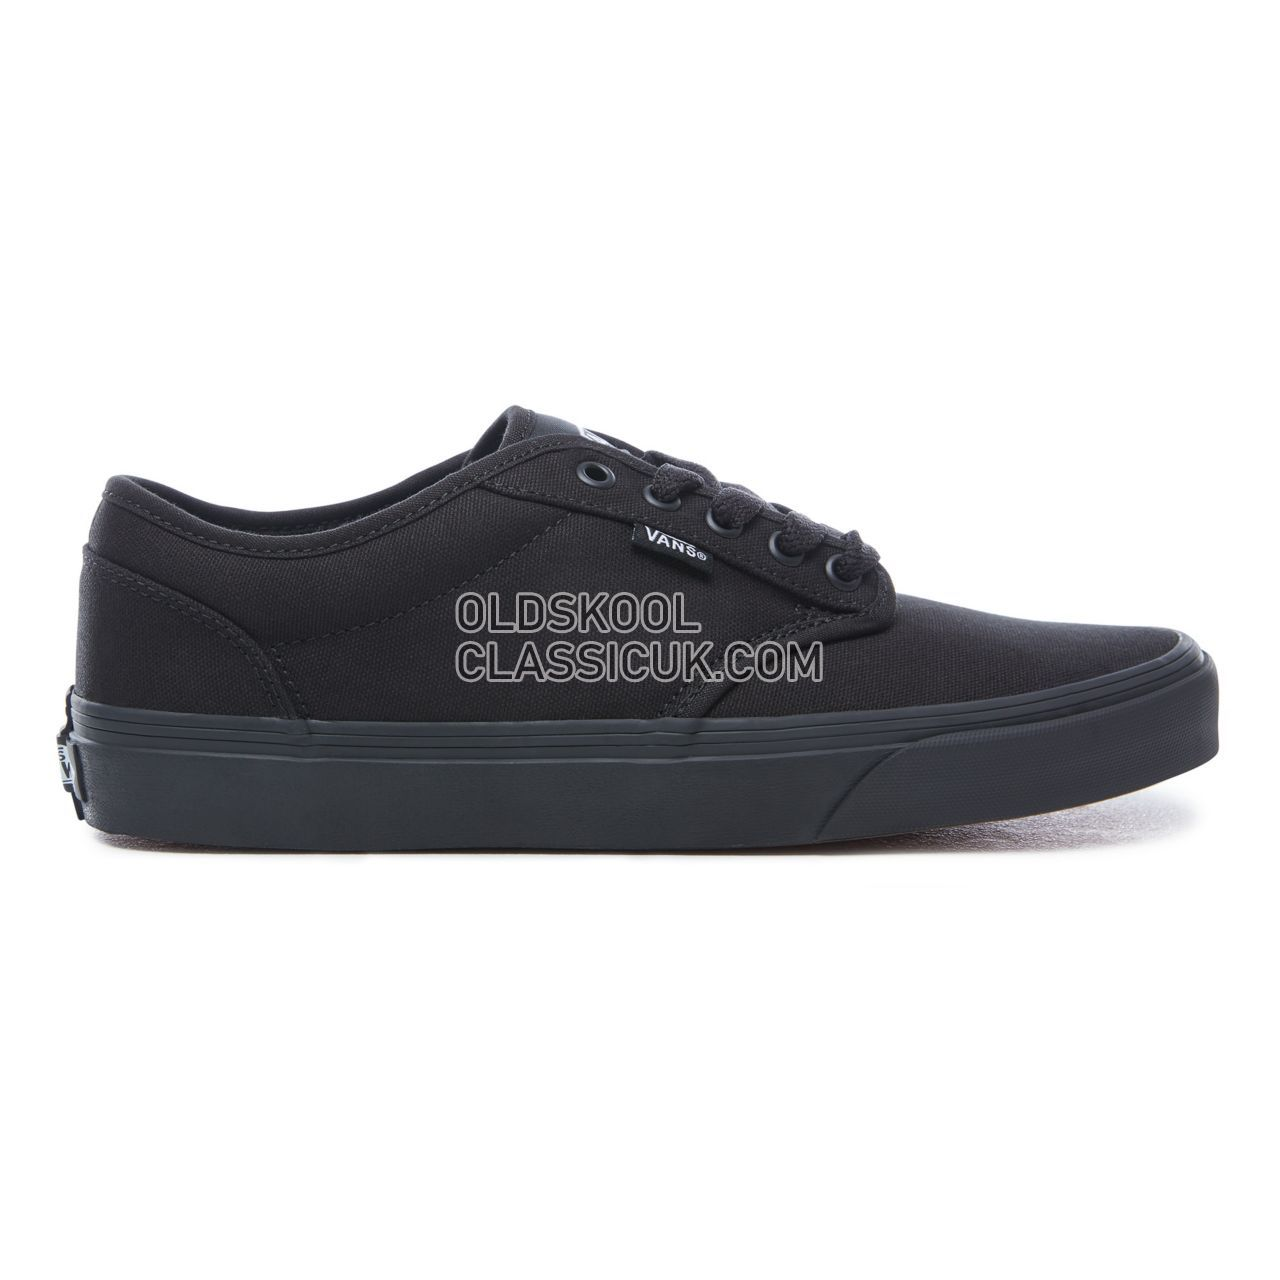 Vans Atwood Sneakers Mens Black VN000TUY186 Shoes